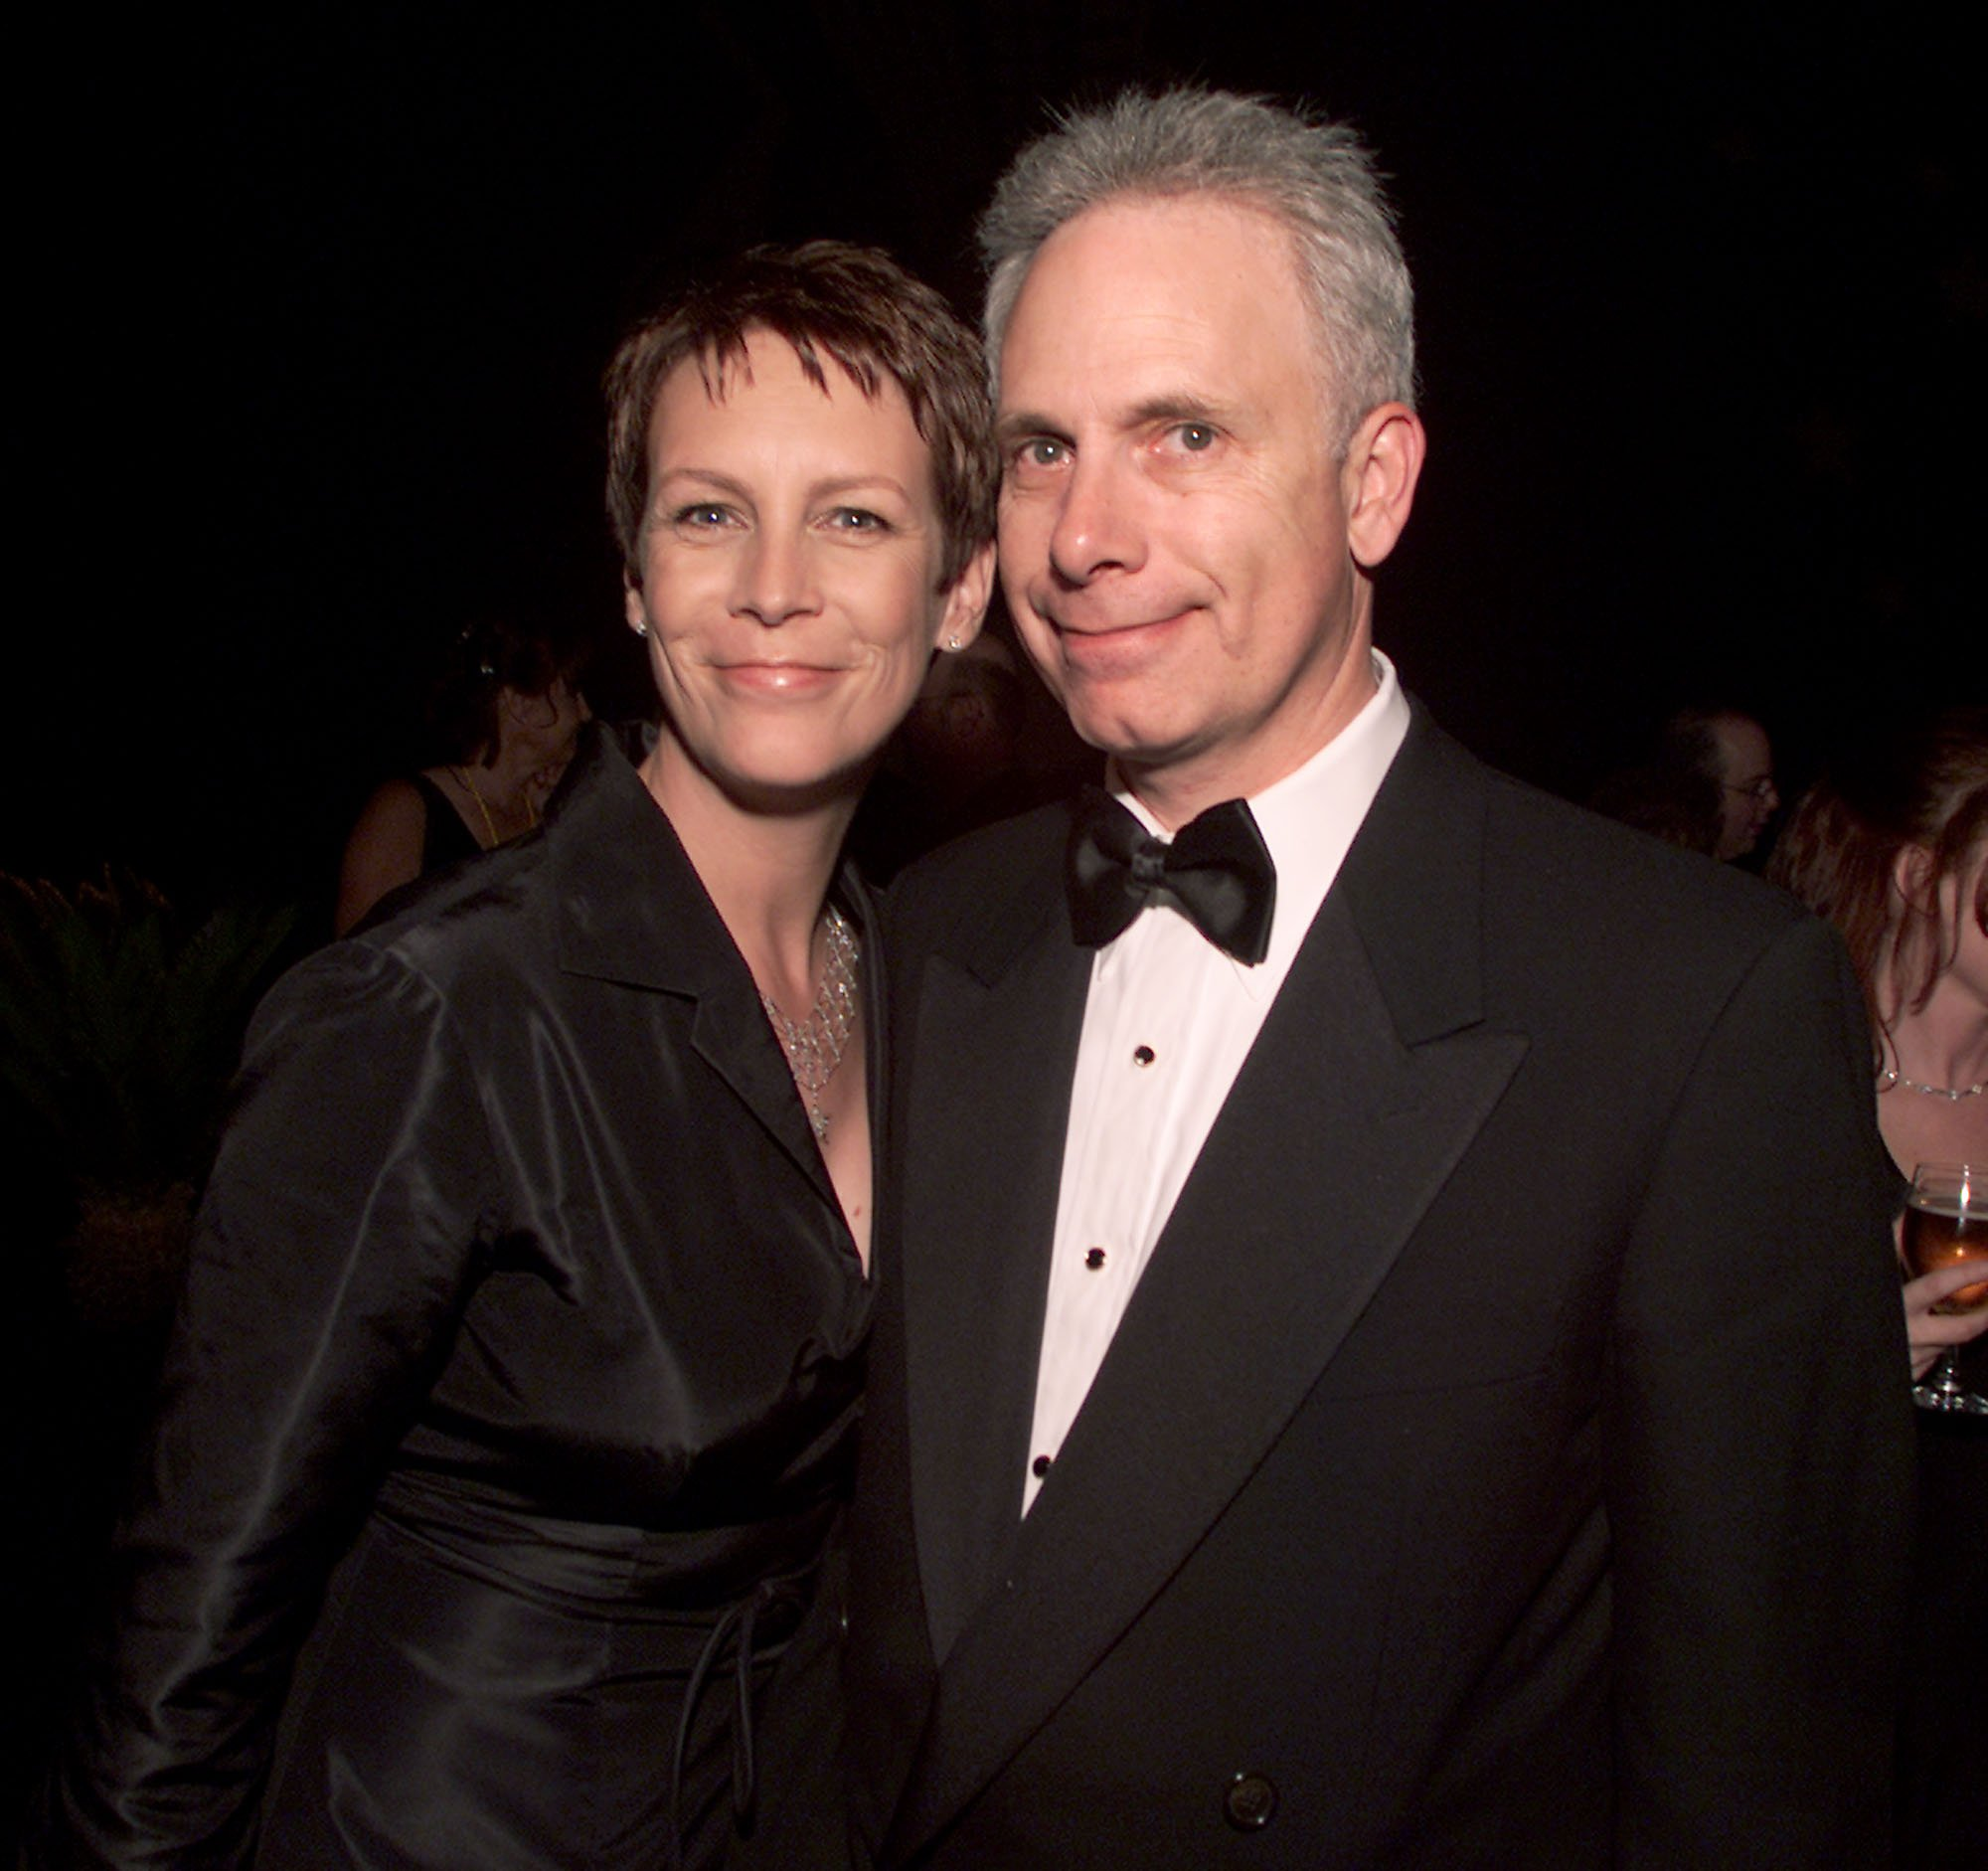 Jamie Lee Curtis and husband Christopher Guest at Comedy Central's post-party after the 15th Annual American Comedy Awards were taped at Universal Studios, Los Angeles, California on April 22, 2001. | Source: Getty Images.